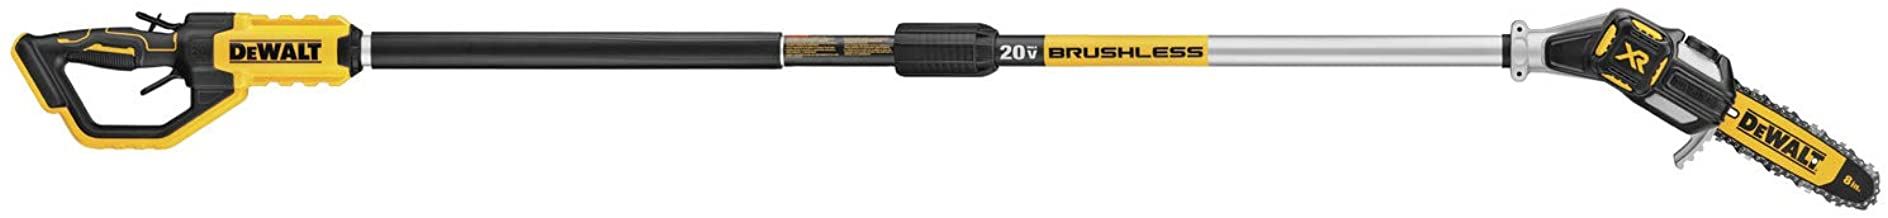 DEWALT 20V MAX XR Pole Saw, 15-Foot Reach, Tool Only (DCPS620B)